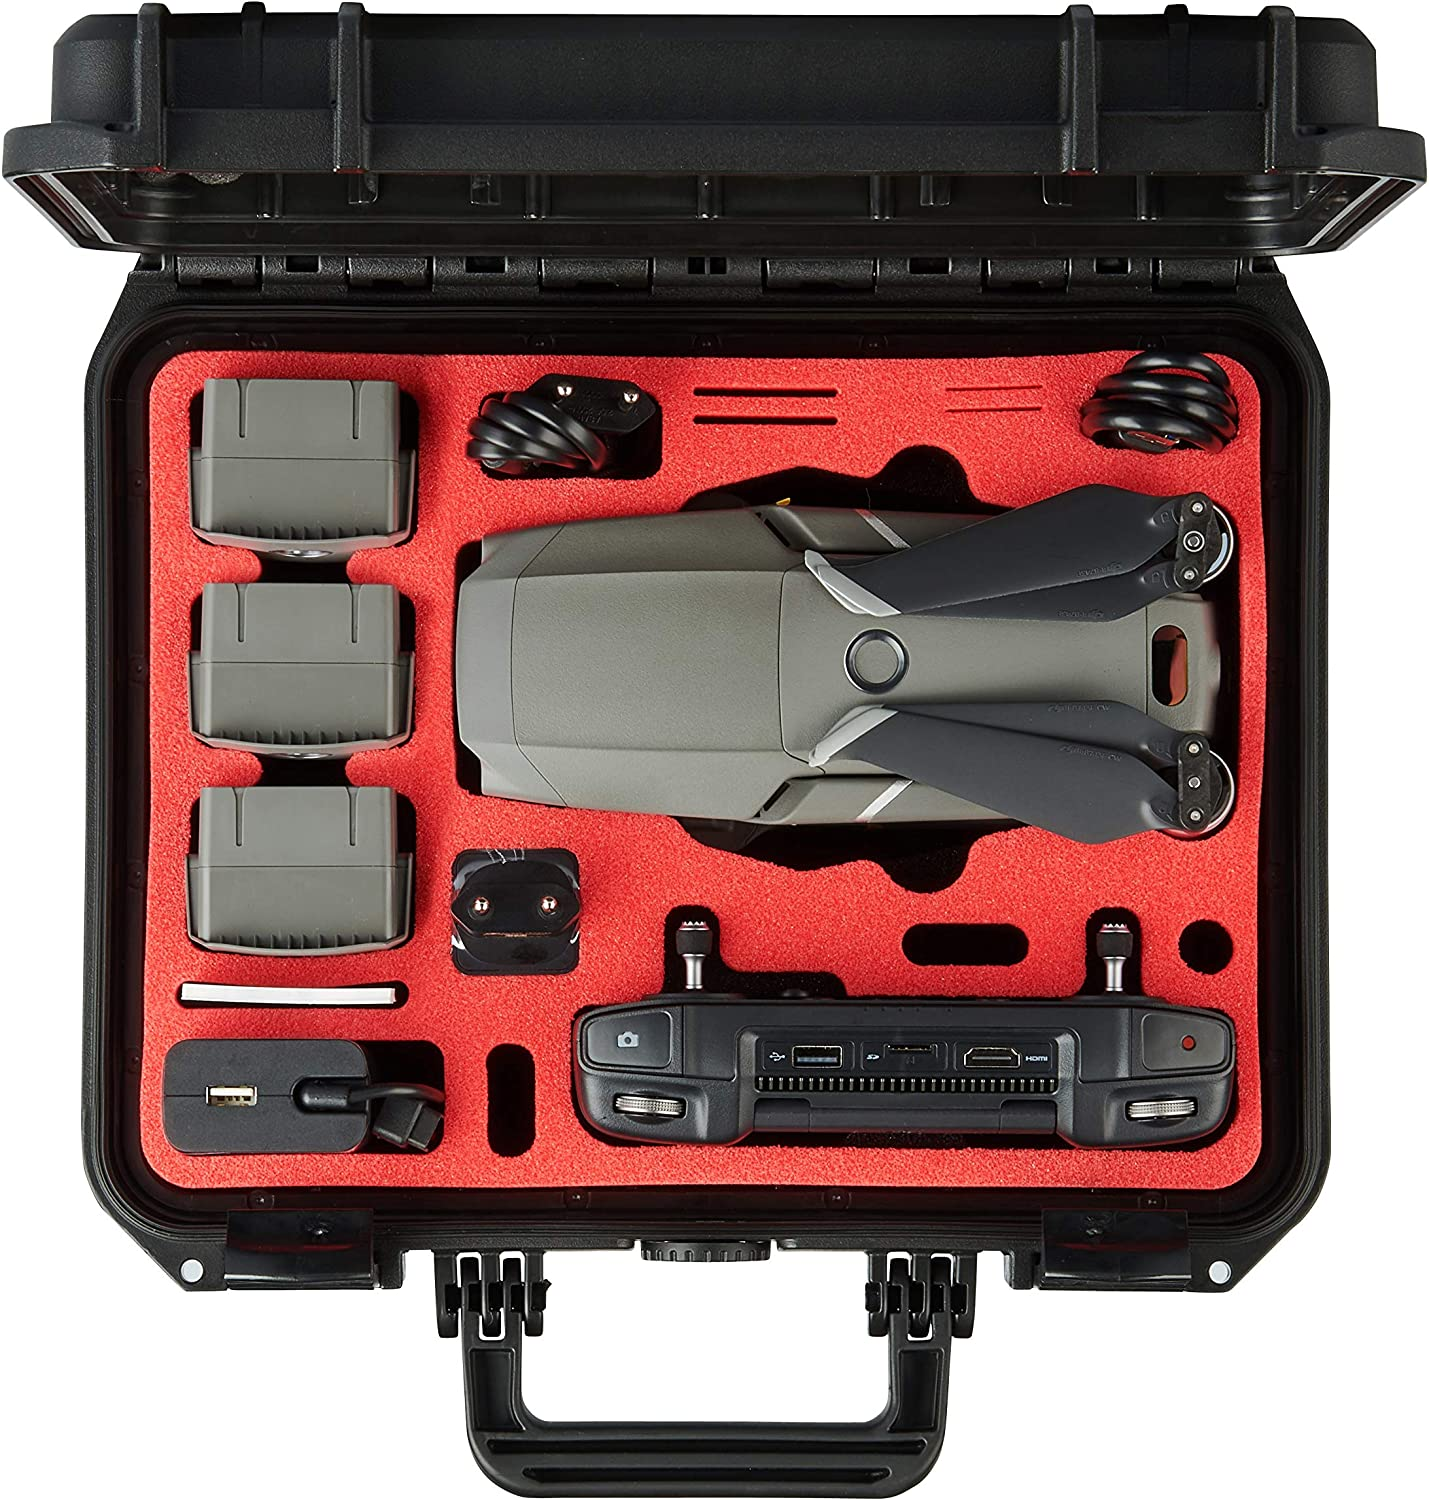 Made in Germany by MC-CASES Compact Edition Professional Carrying Case for DJI Mavic 2 Pro or Zoom with Smart Controller